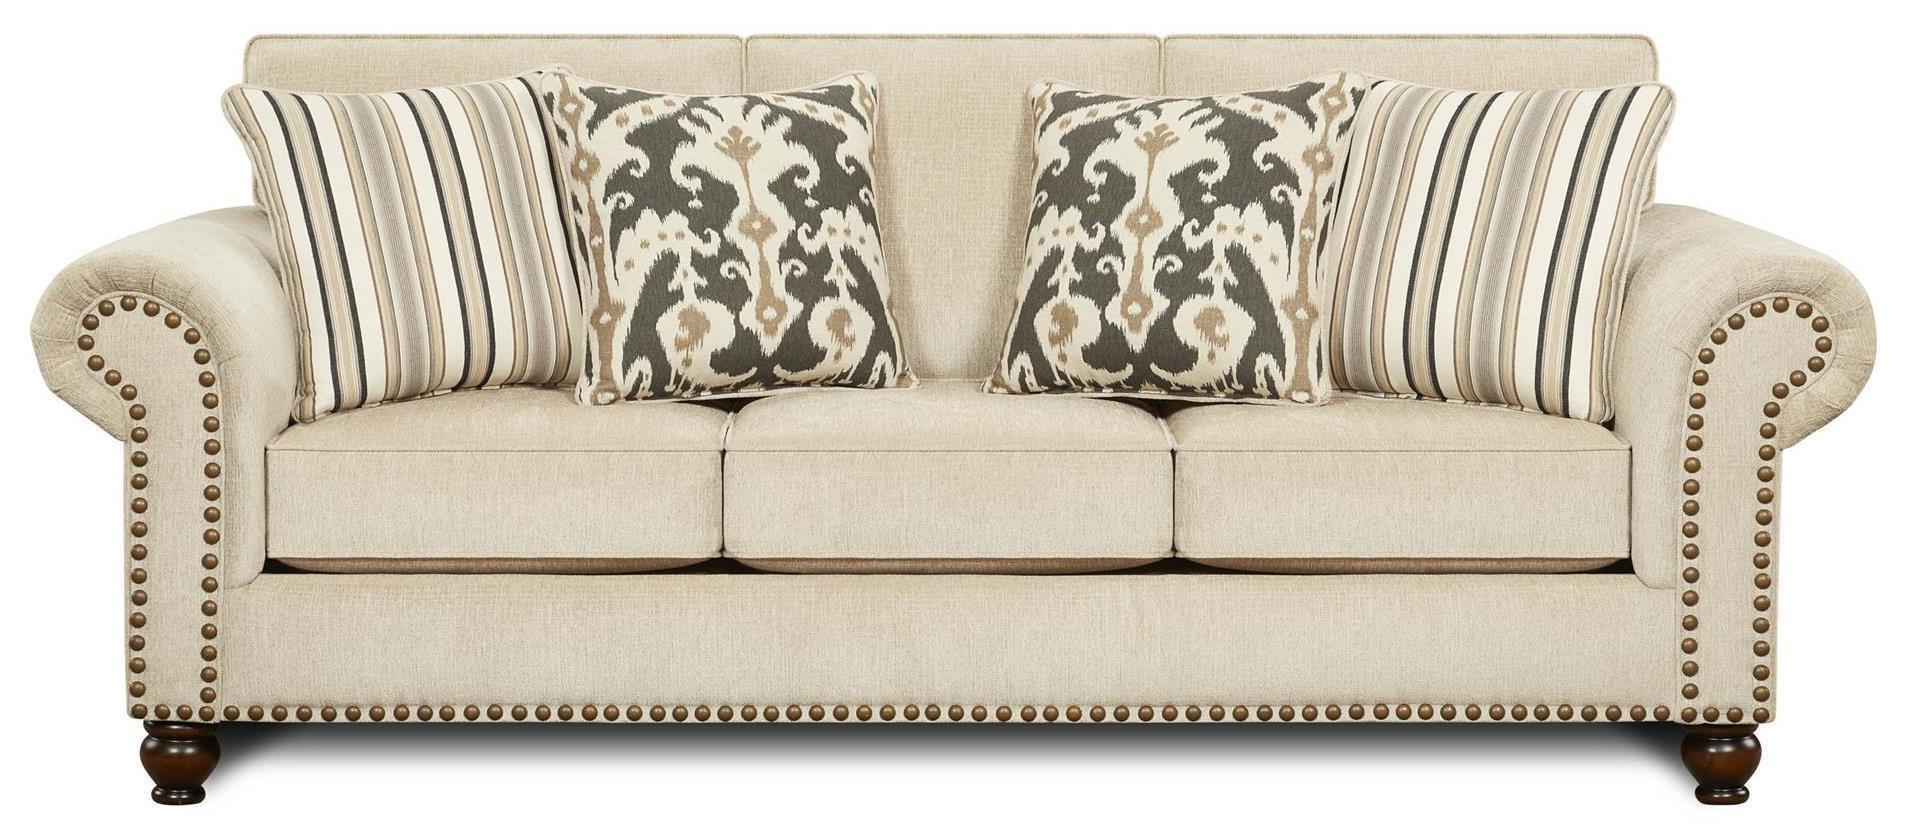 Fusion Furniture Fairleigh Sofa - Item Number: 3110Fairly Sand